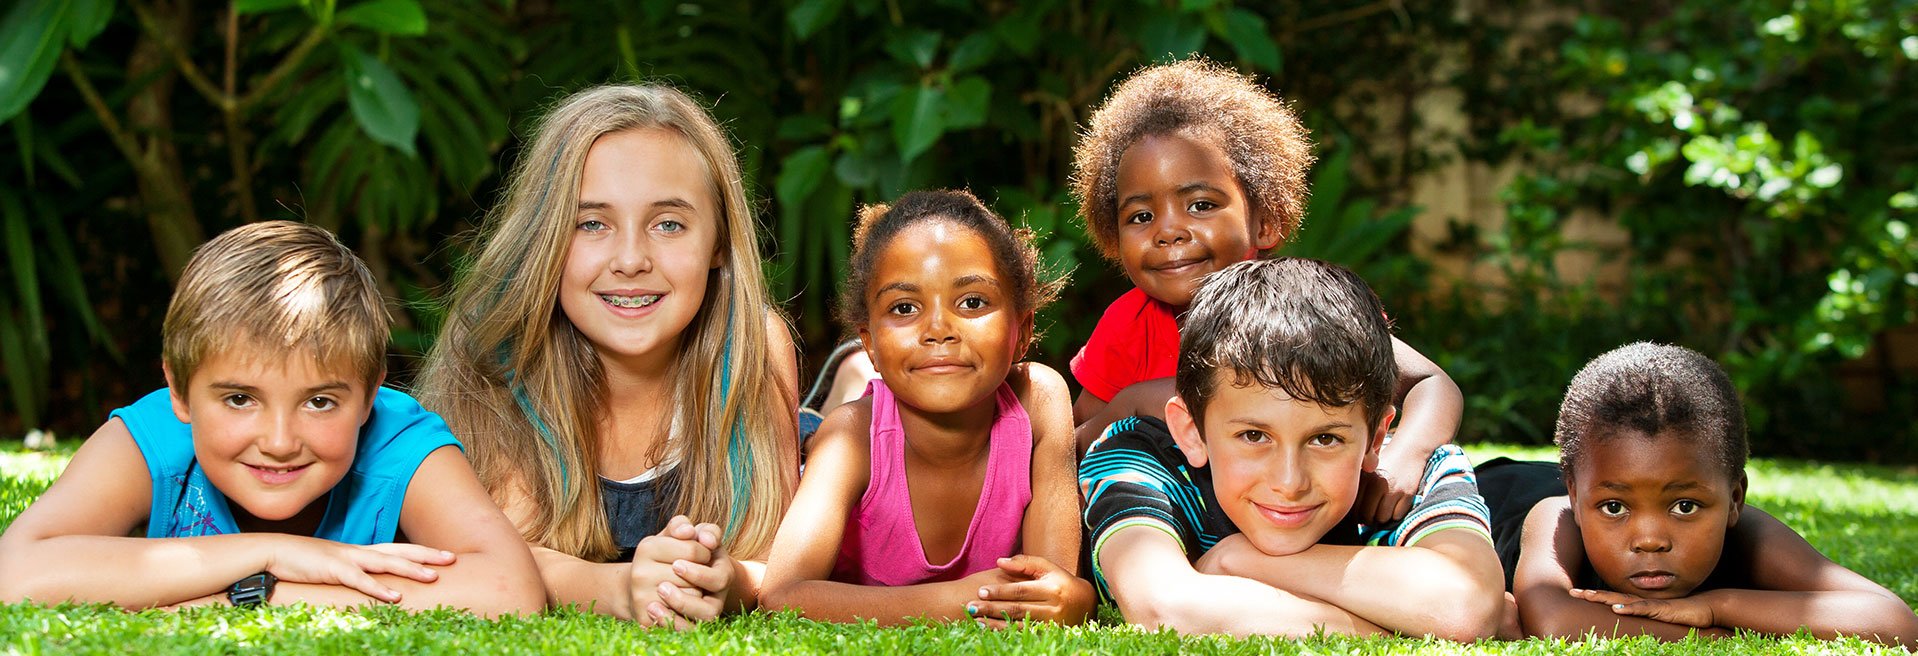 Kids laying in grass - Pediatric Dentist in Ann Arbor, MI